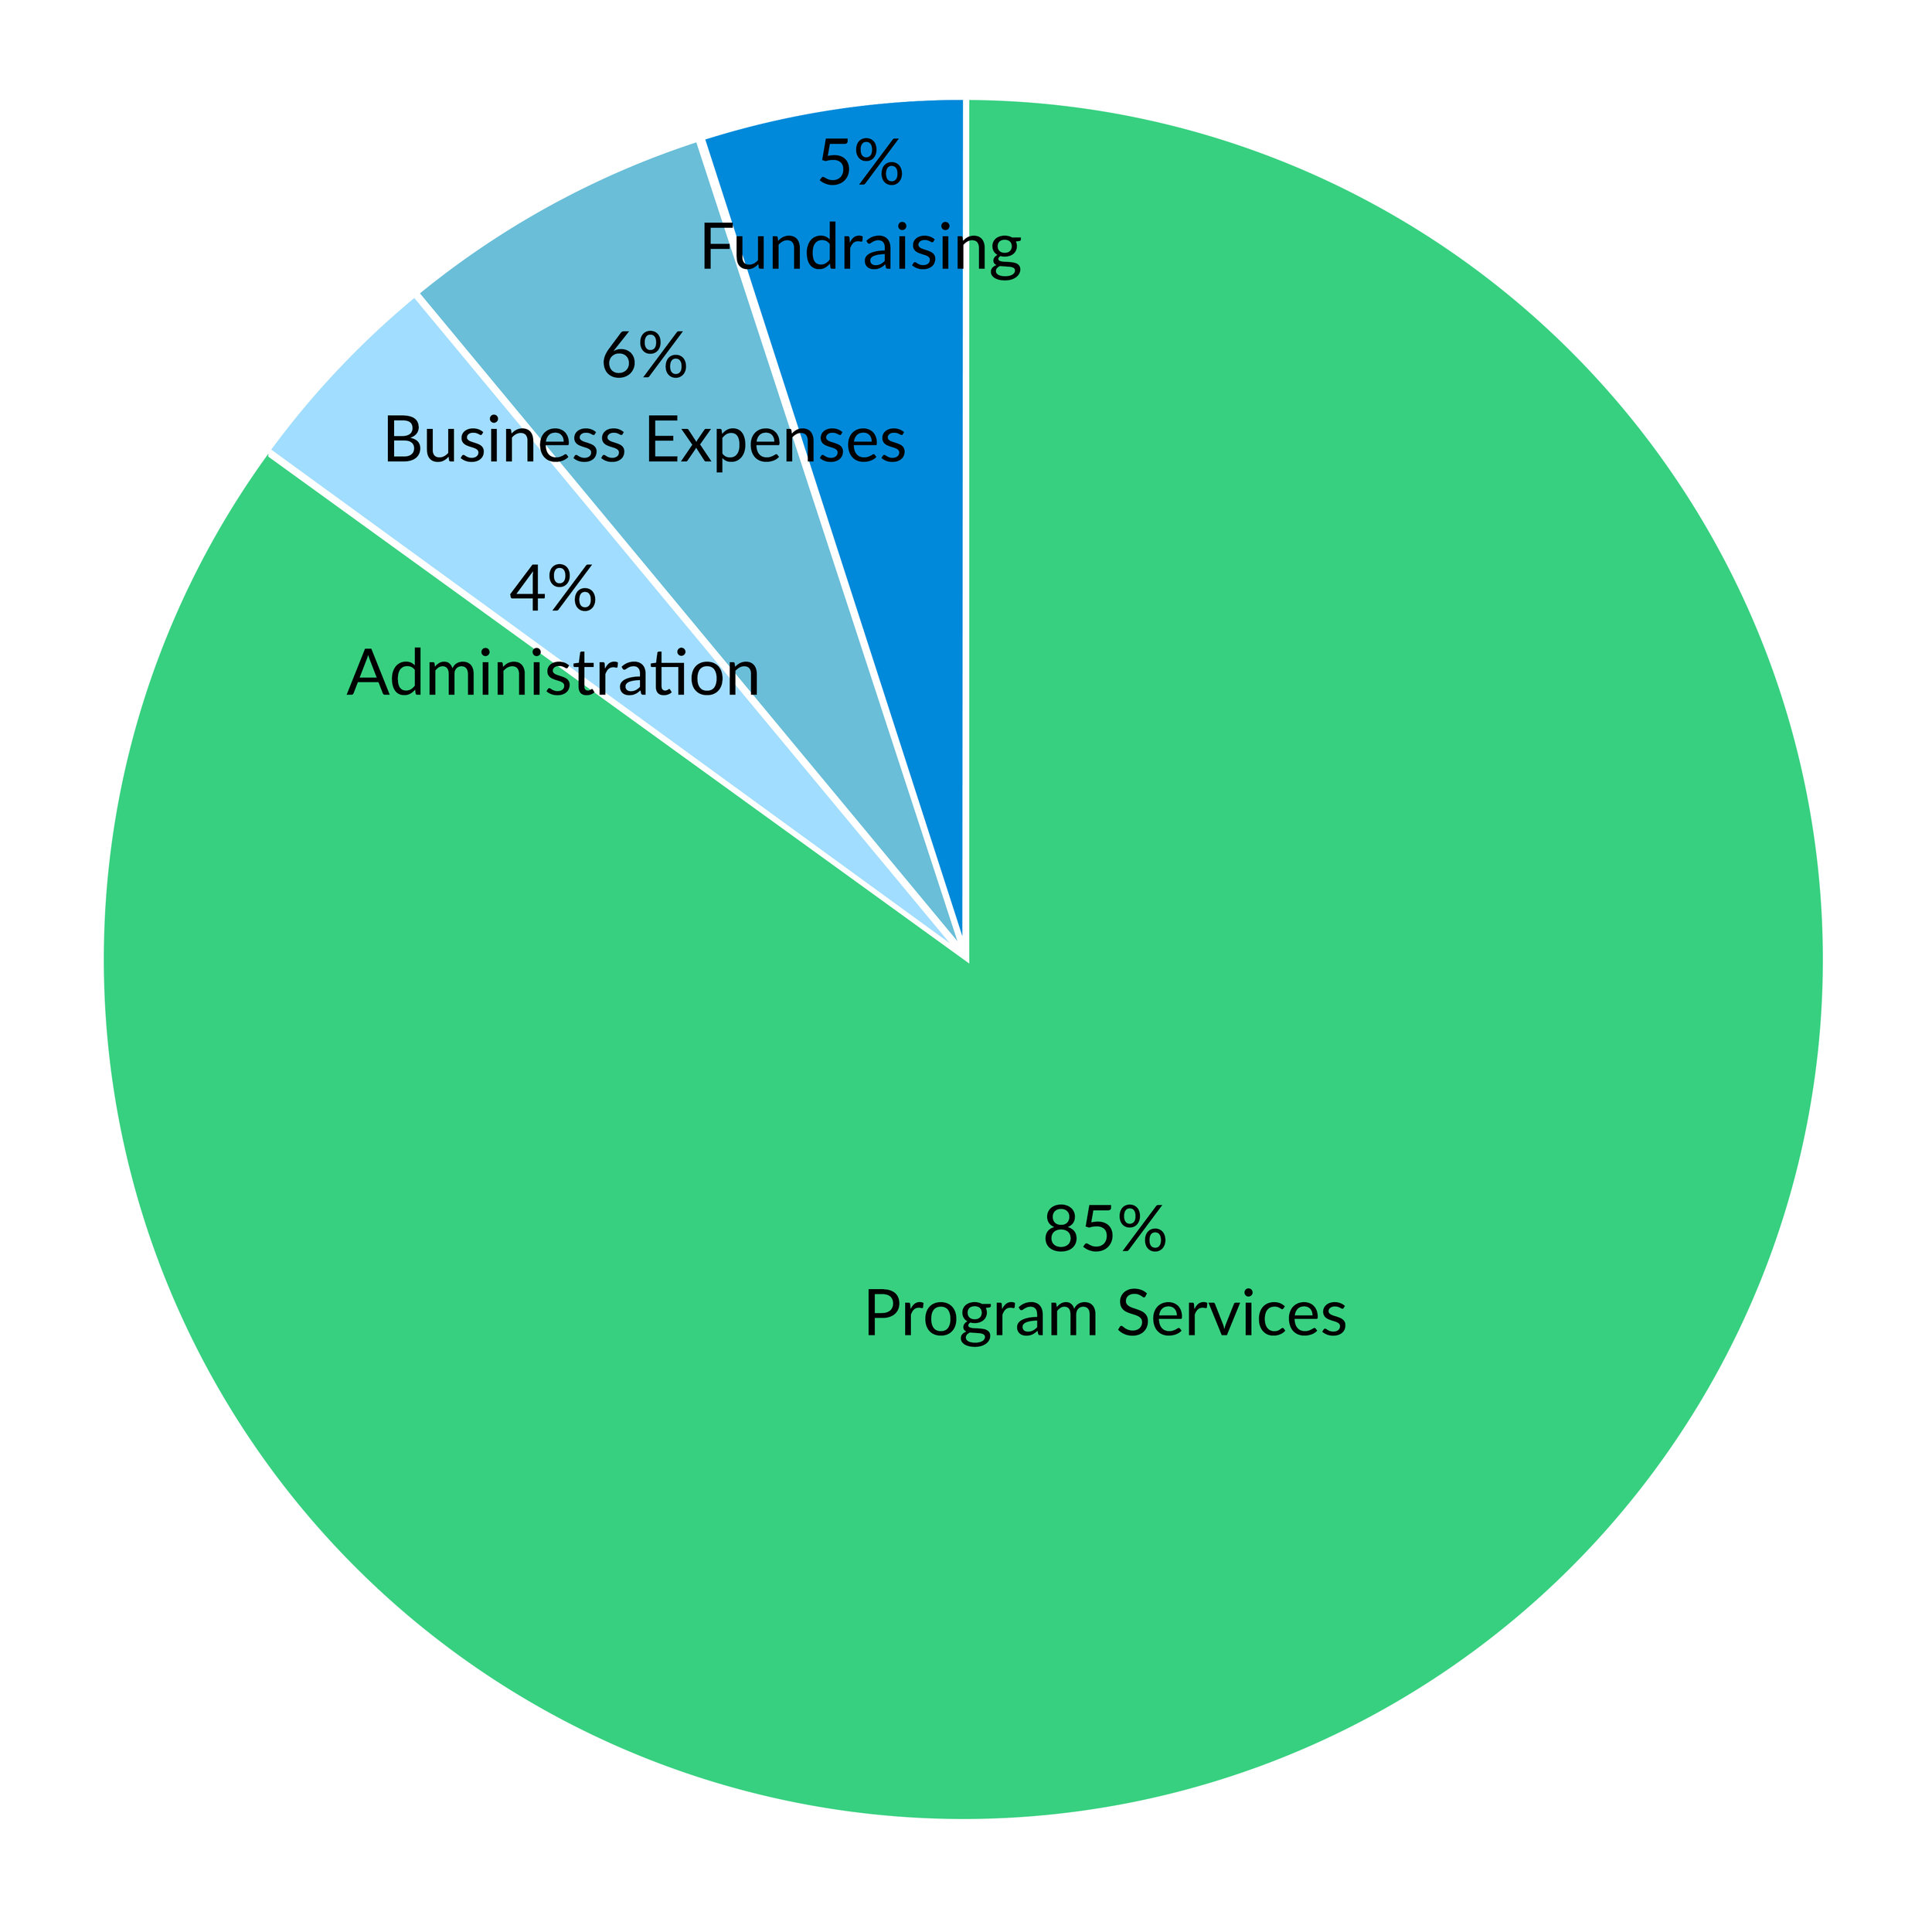 How funds are allocated pie chart